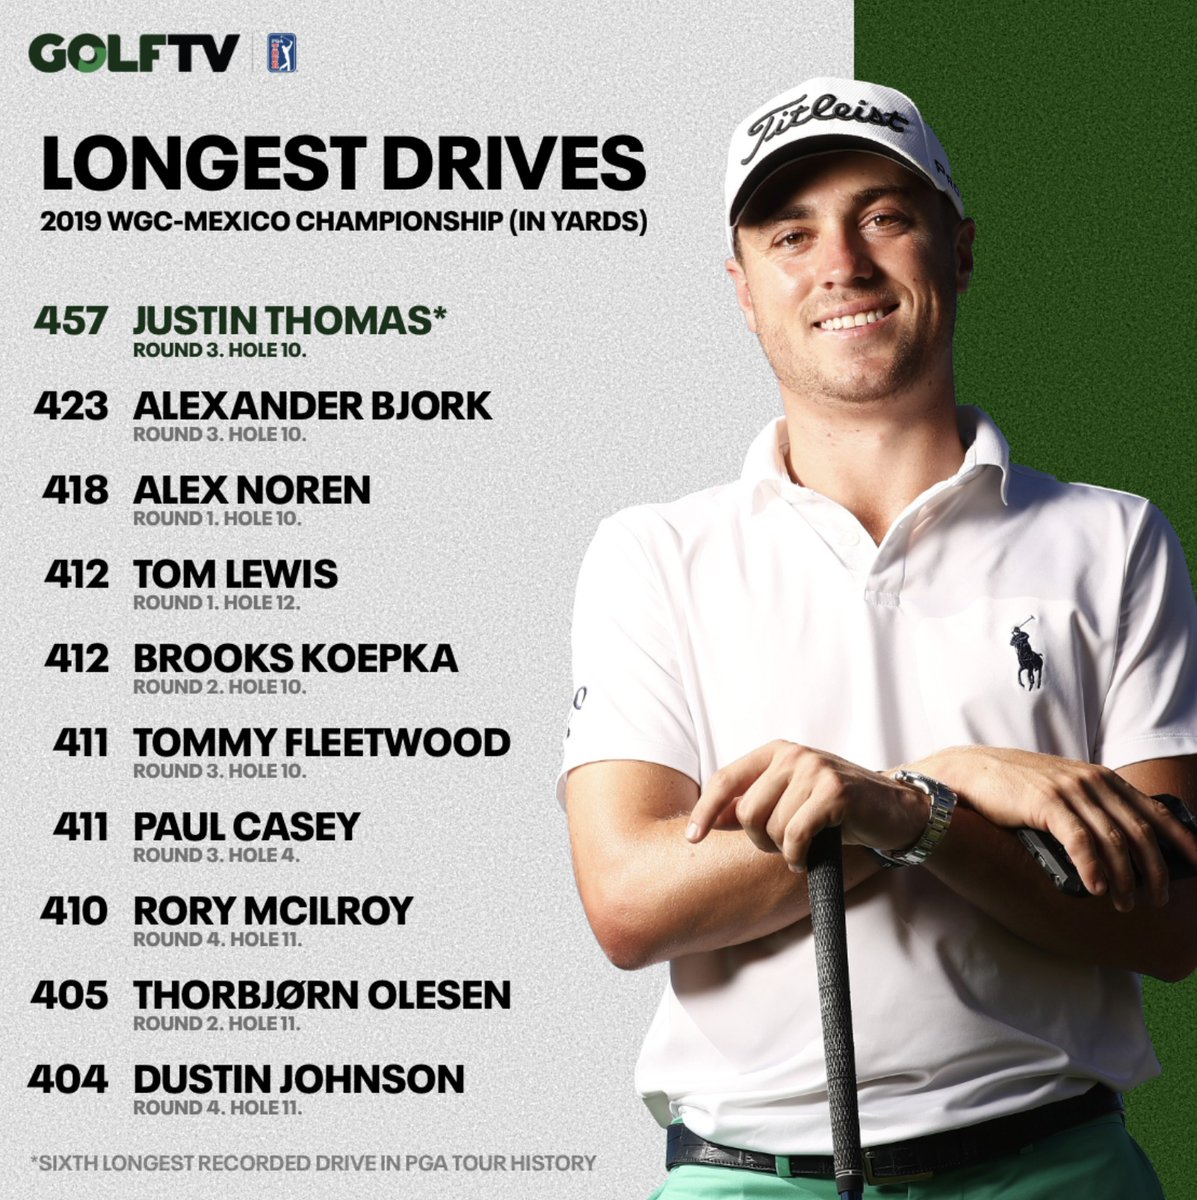 What difference does altitude make? Here's the longest drives from last year's #WGCMexico.